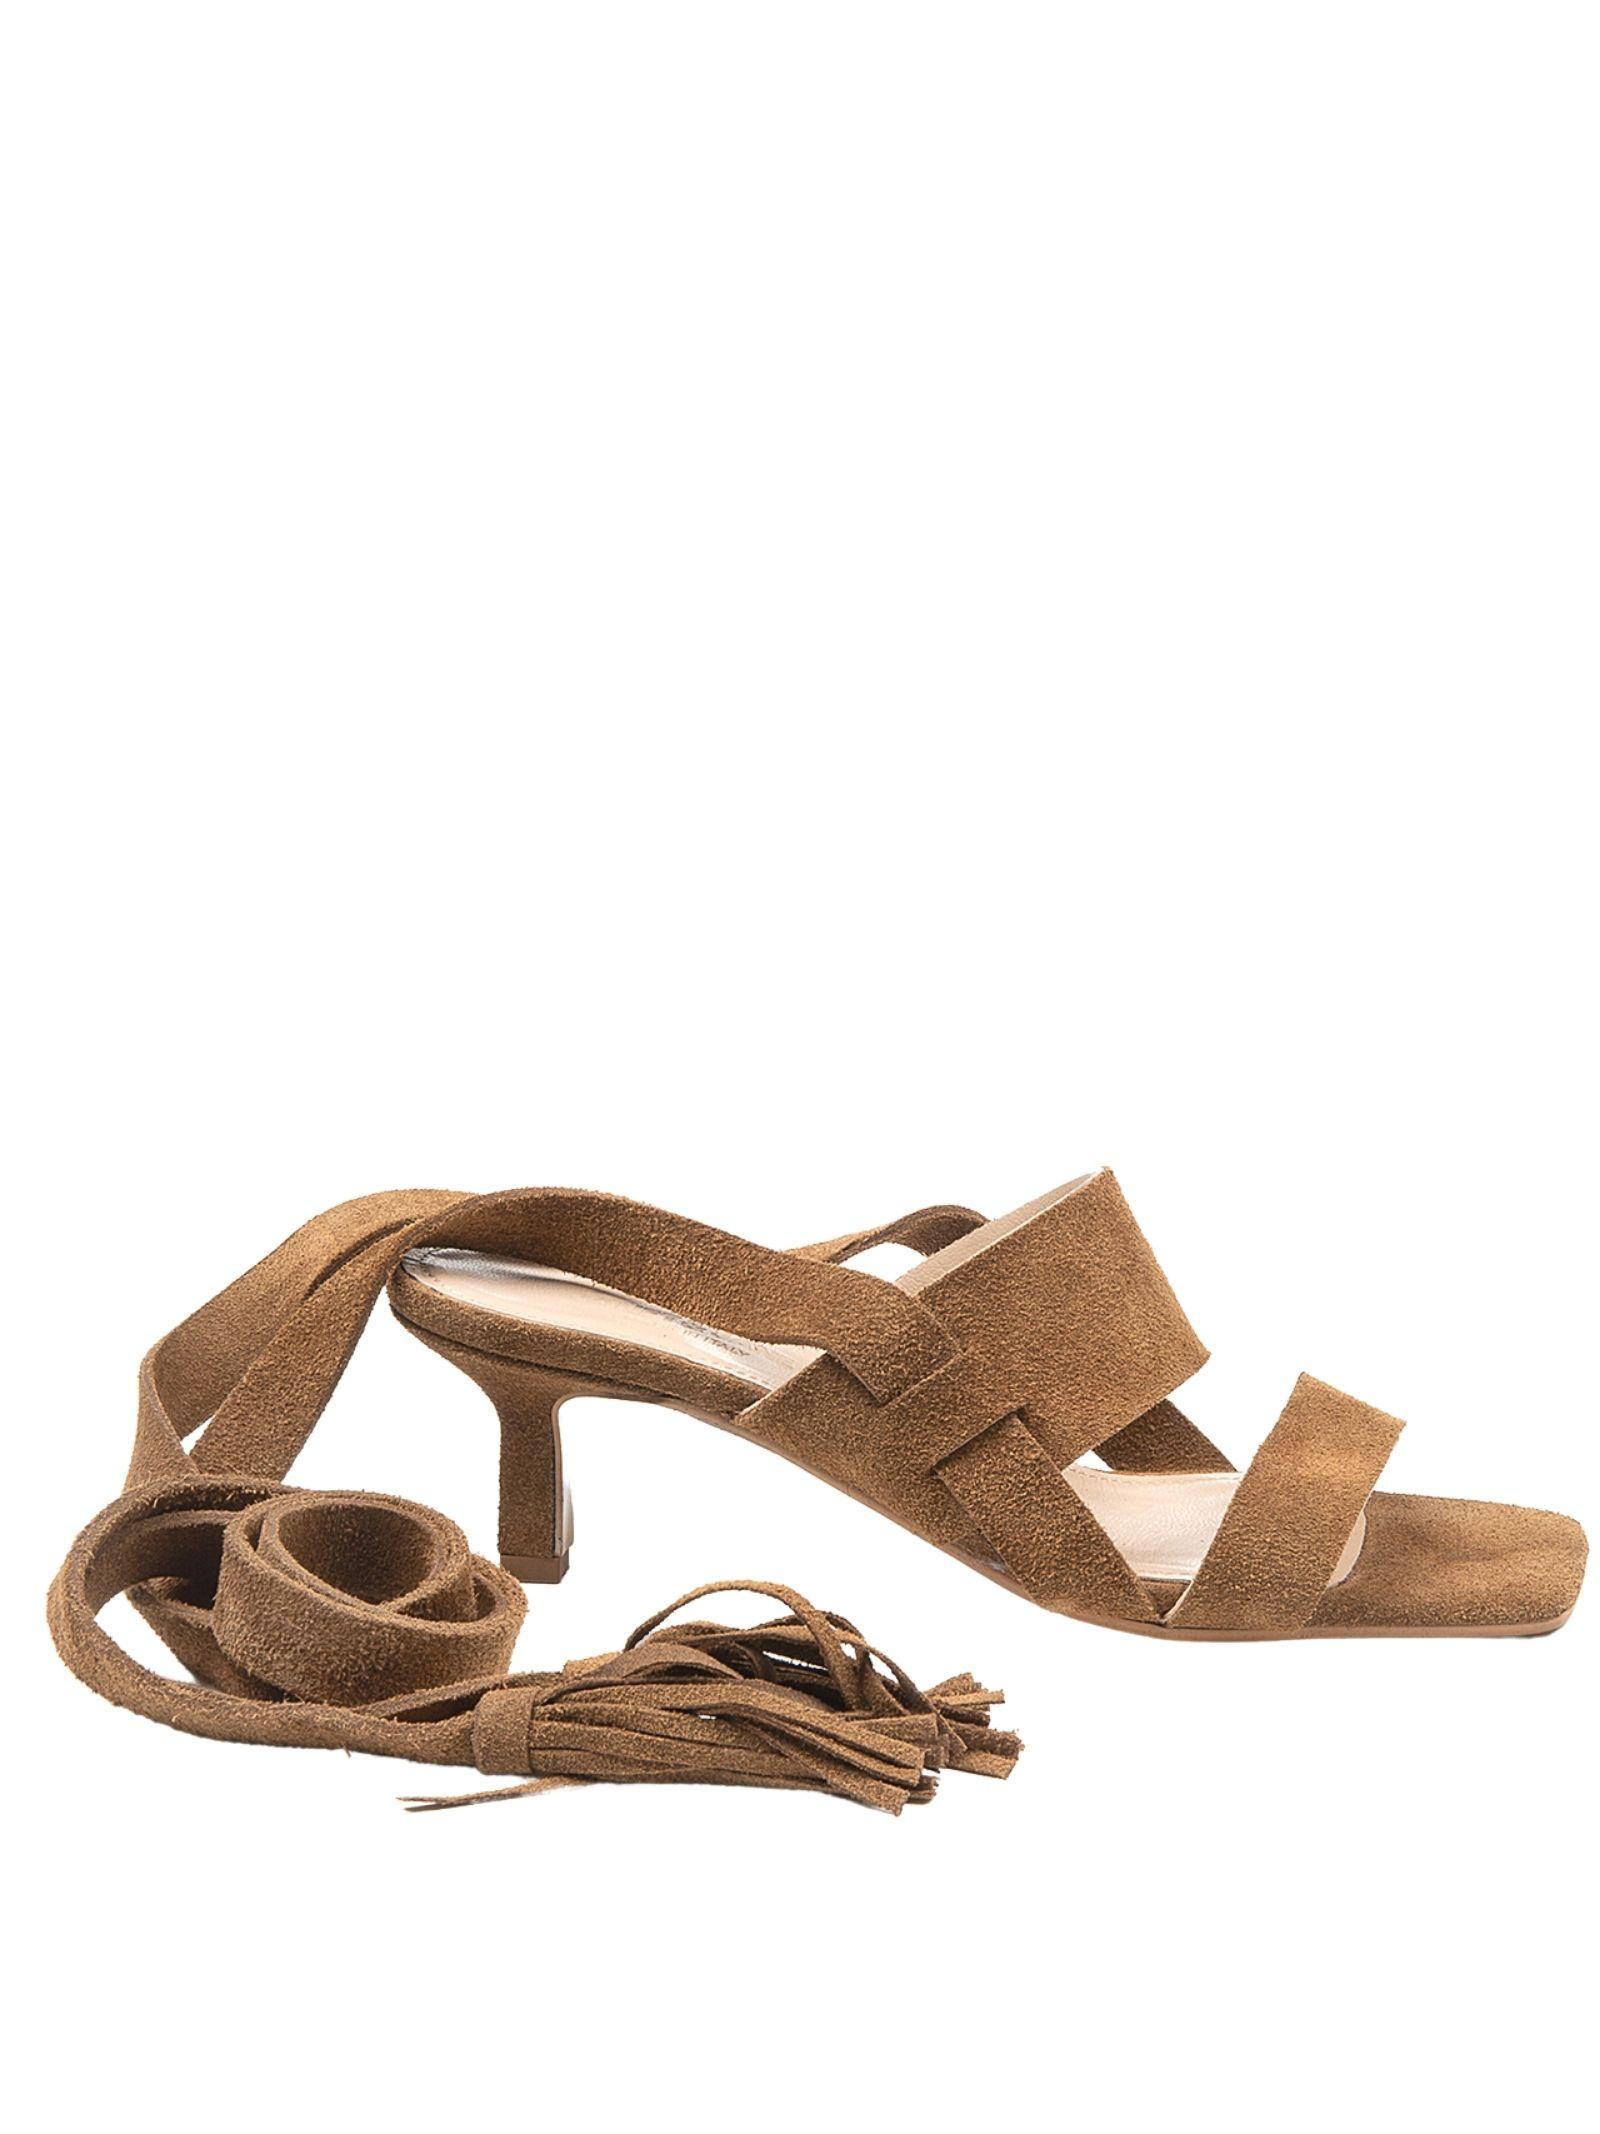 Women's Shoes Sandals in Leather Suede with Double Band and Ankle Laces Janet & Janet | Sandals | 01151014